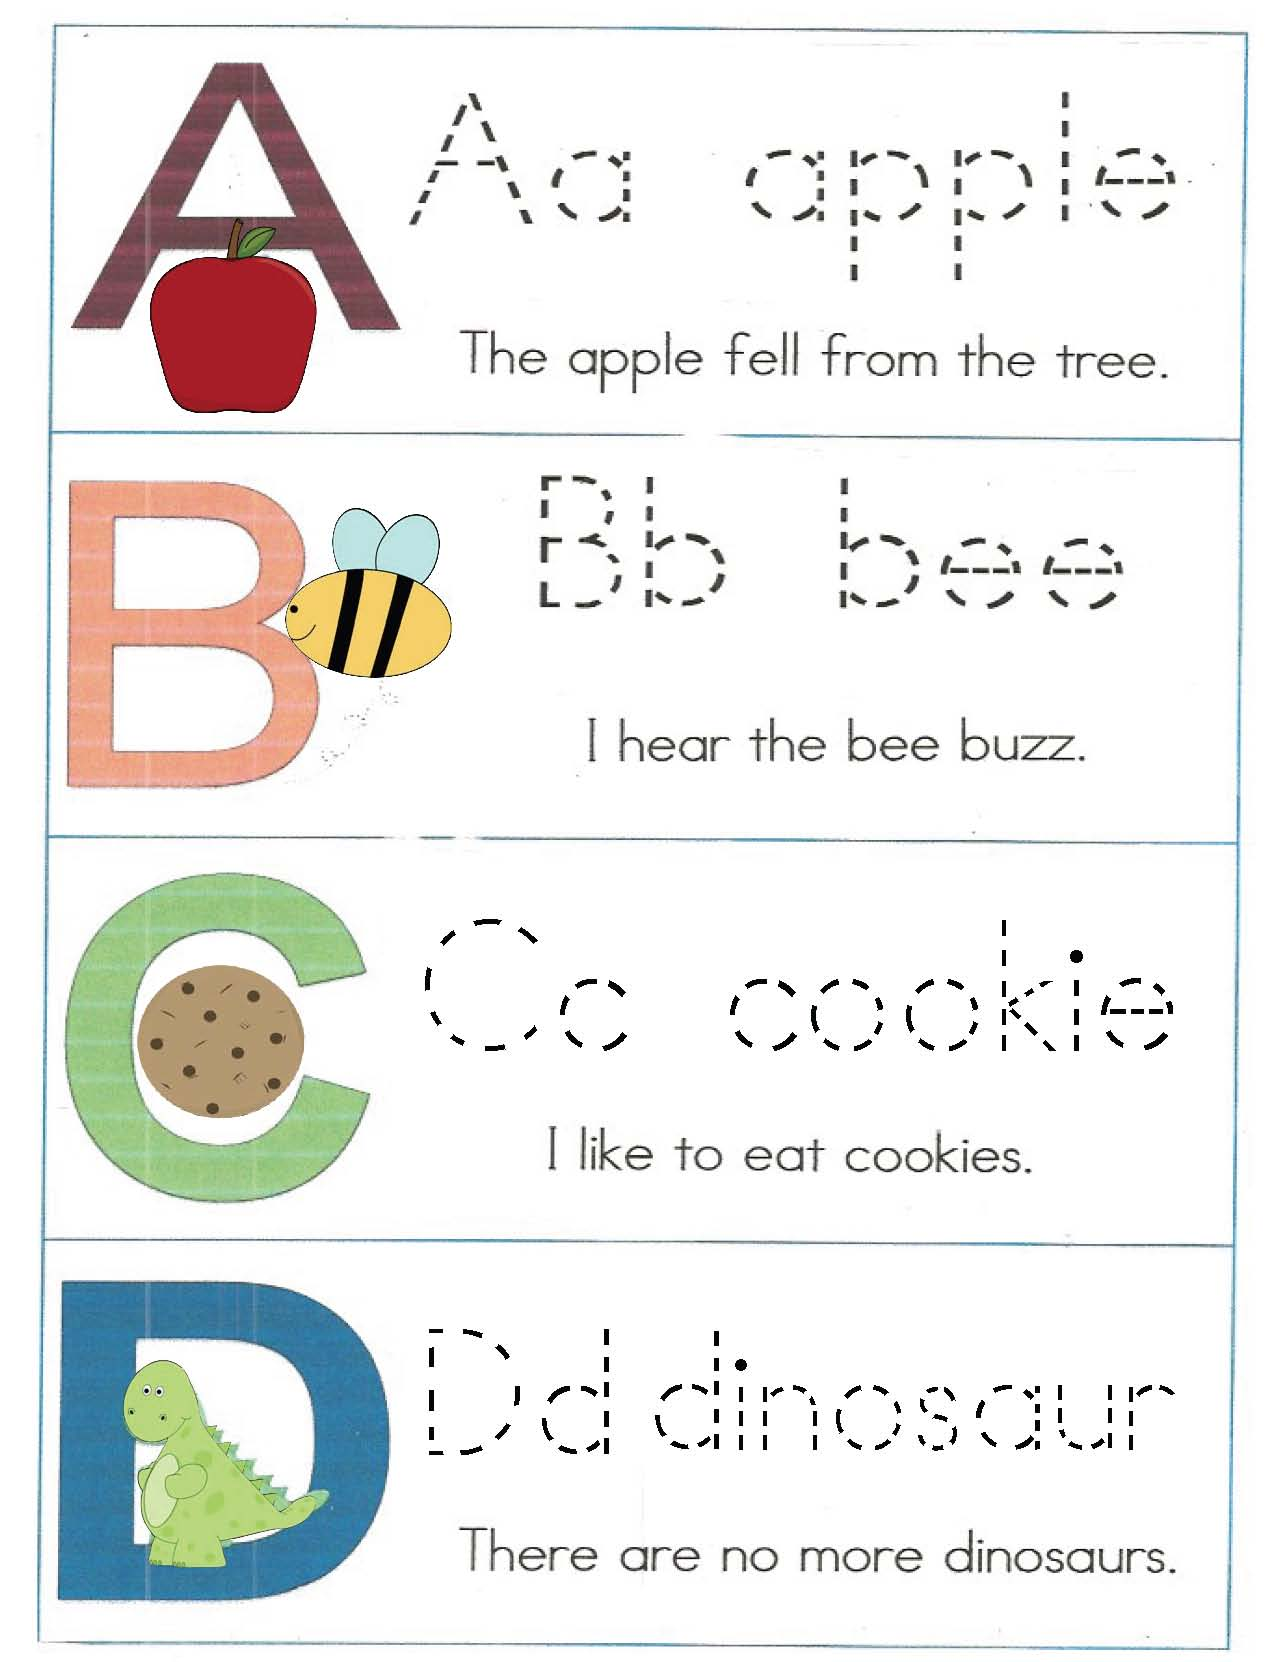 1Pages from ABC emergent reader packet .jpg dolch list for abc booklet.jpg Pages from ABC emergent reader packet .jpg Pages from abc poster cute graphics-3.jpg Pages from abc poster cute graphics.jpg Pages from PREVIEW abc emergent reader.jpg